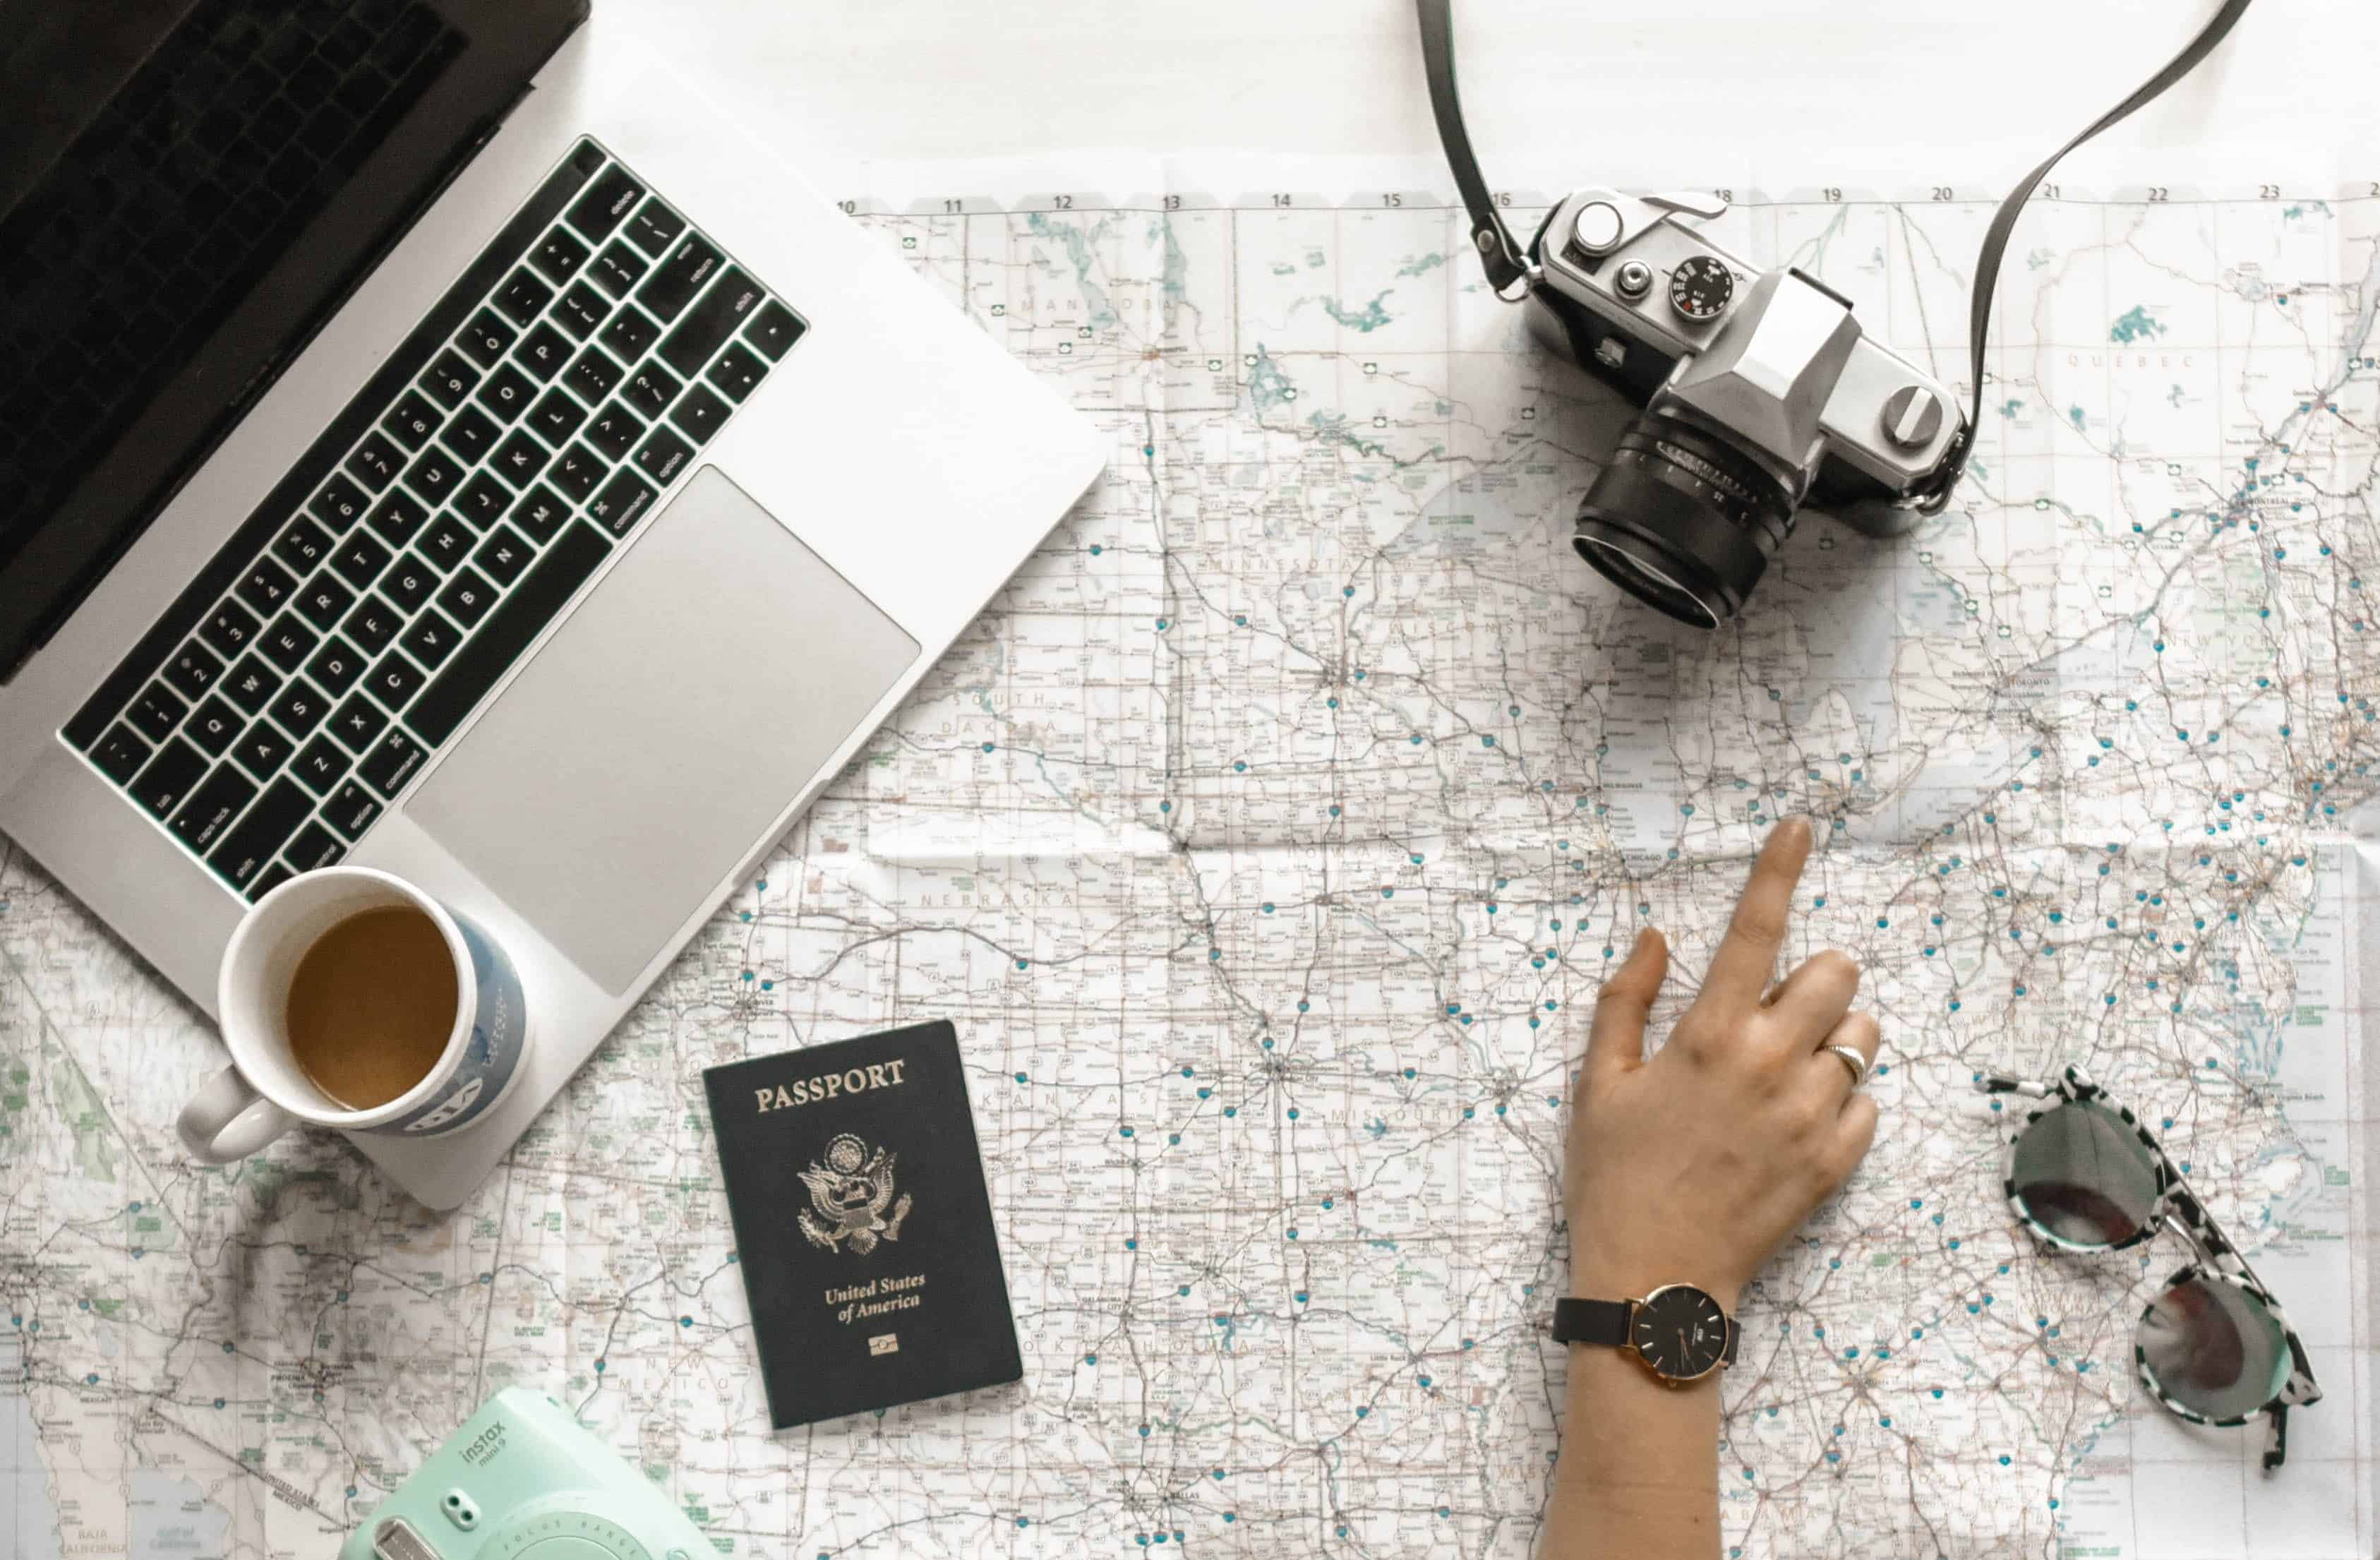 How to Complete Your Passport Application the Right Way